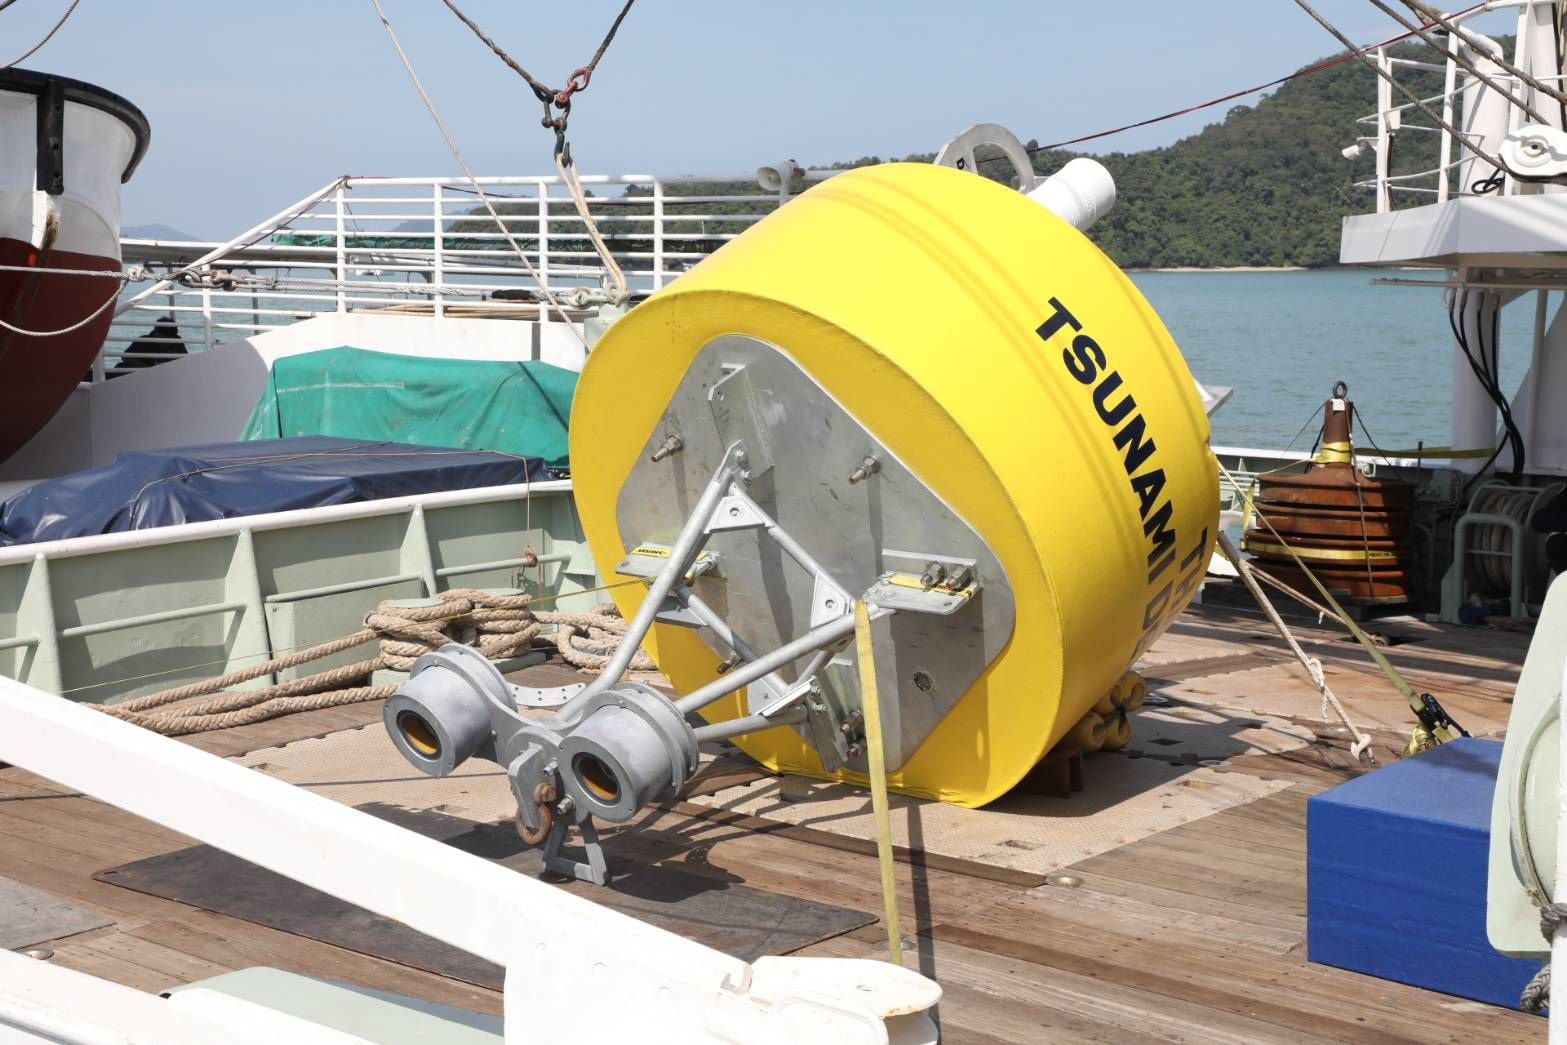 Tsunami warning buoys to be installed, replacing Thailand's out-of-action buoys | The Thaiger